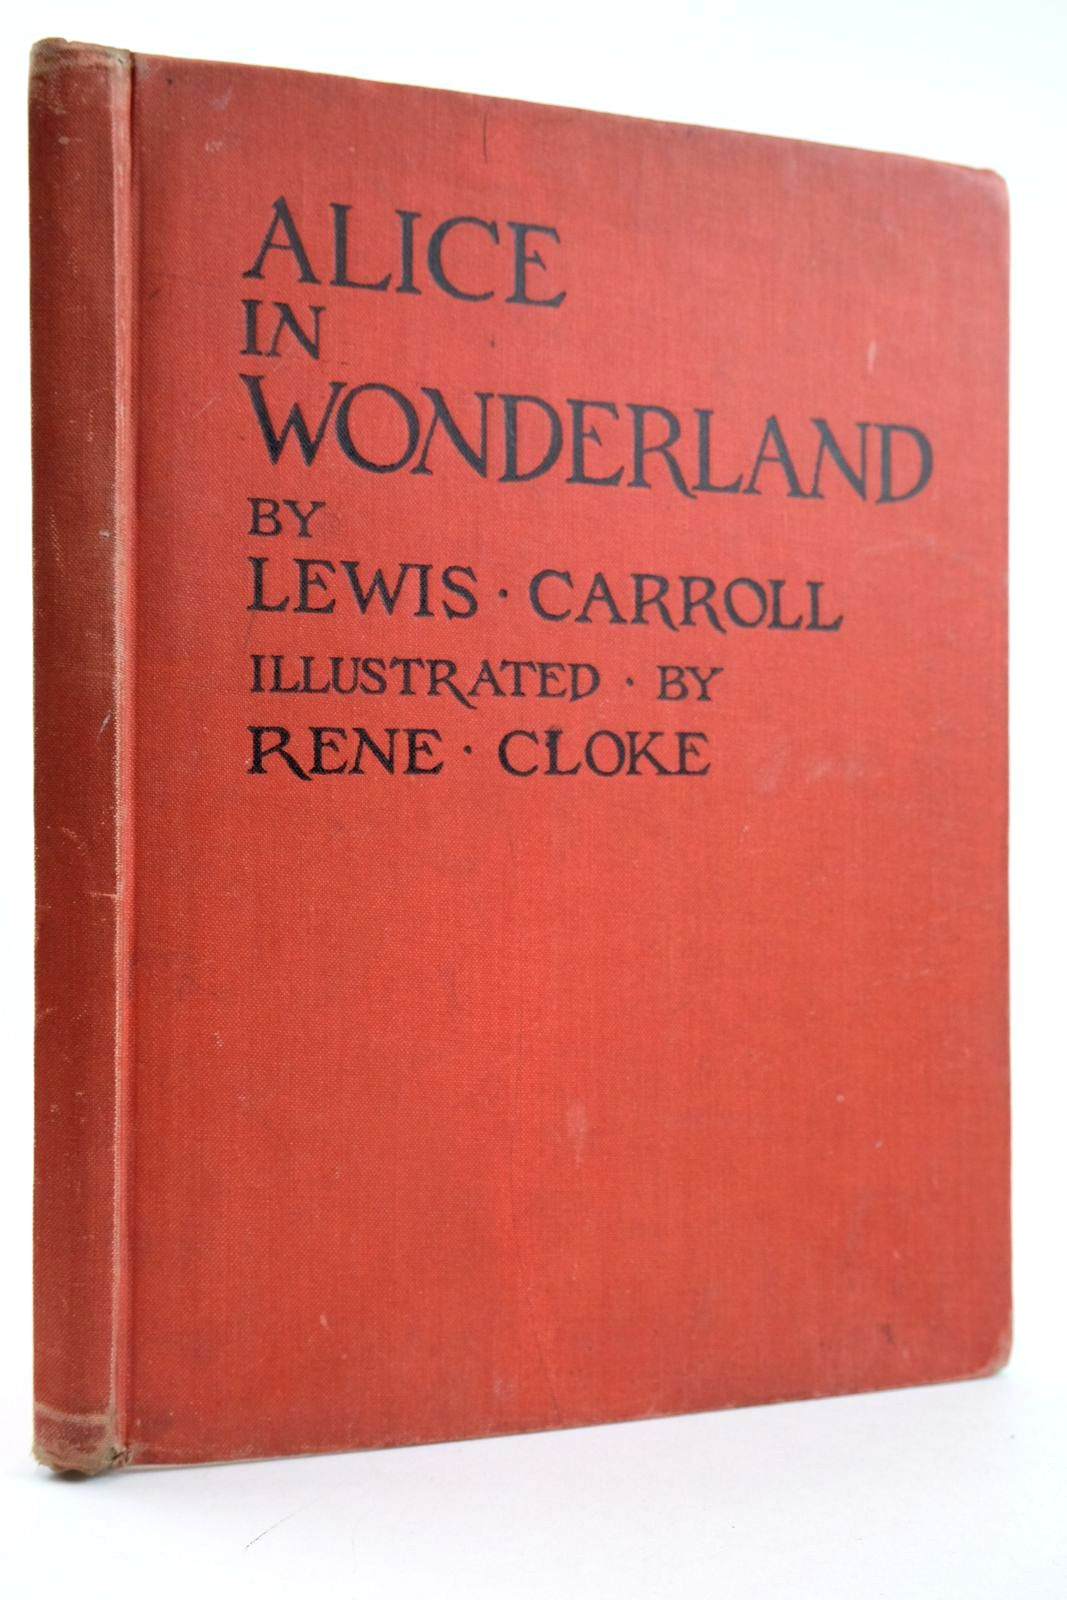 Photo of ALICE IN WONDERLAND written by Carroll, Lewis illustrated by Cloke, Rene published by P.R. Gawthorn Ltd. (STOCK CODE: 2133247)  for sale by Stella & Rose's Books